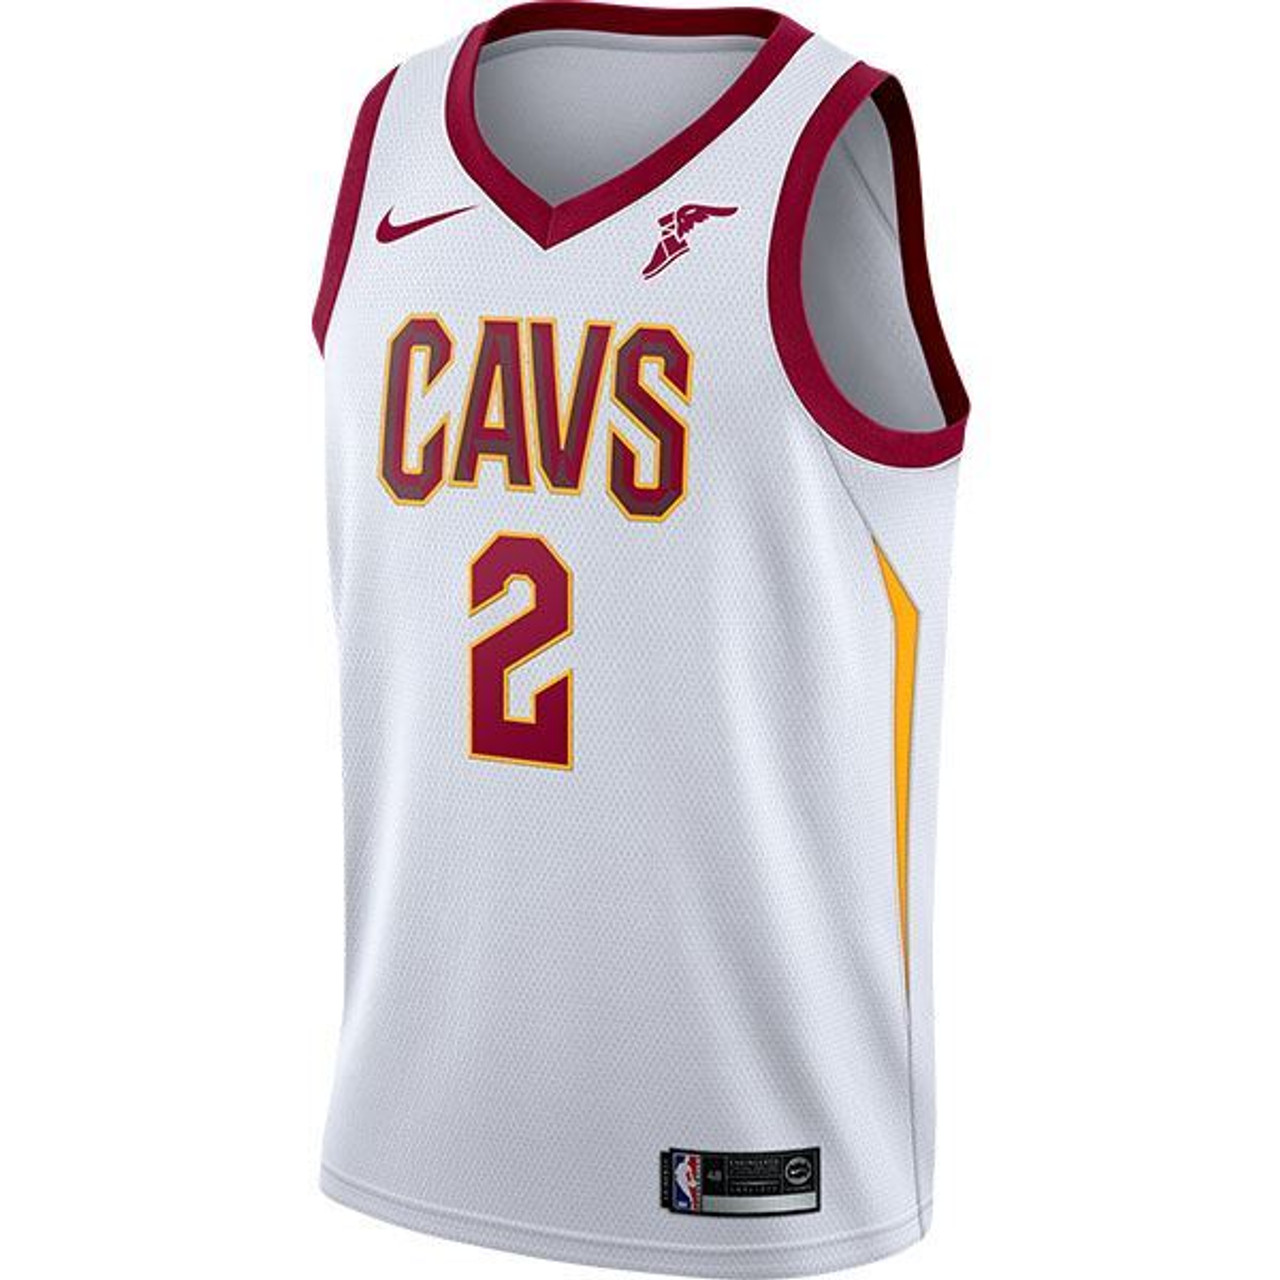 on sale 69302 dec2d youth-cavs-jersey